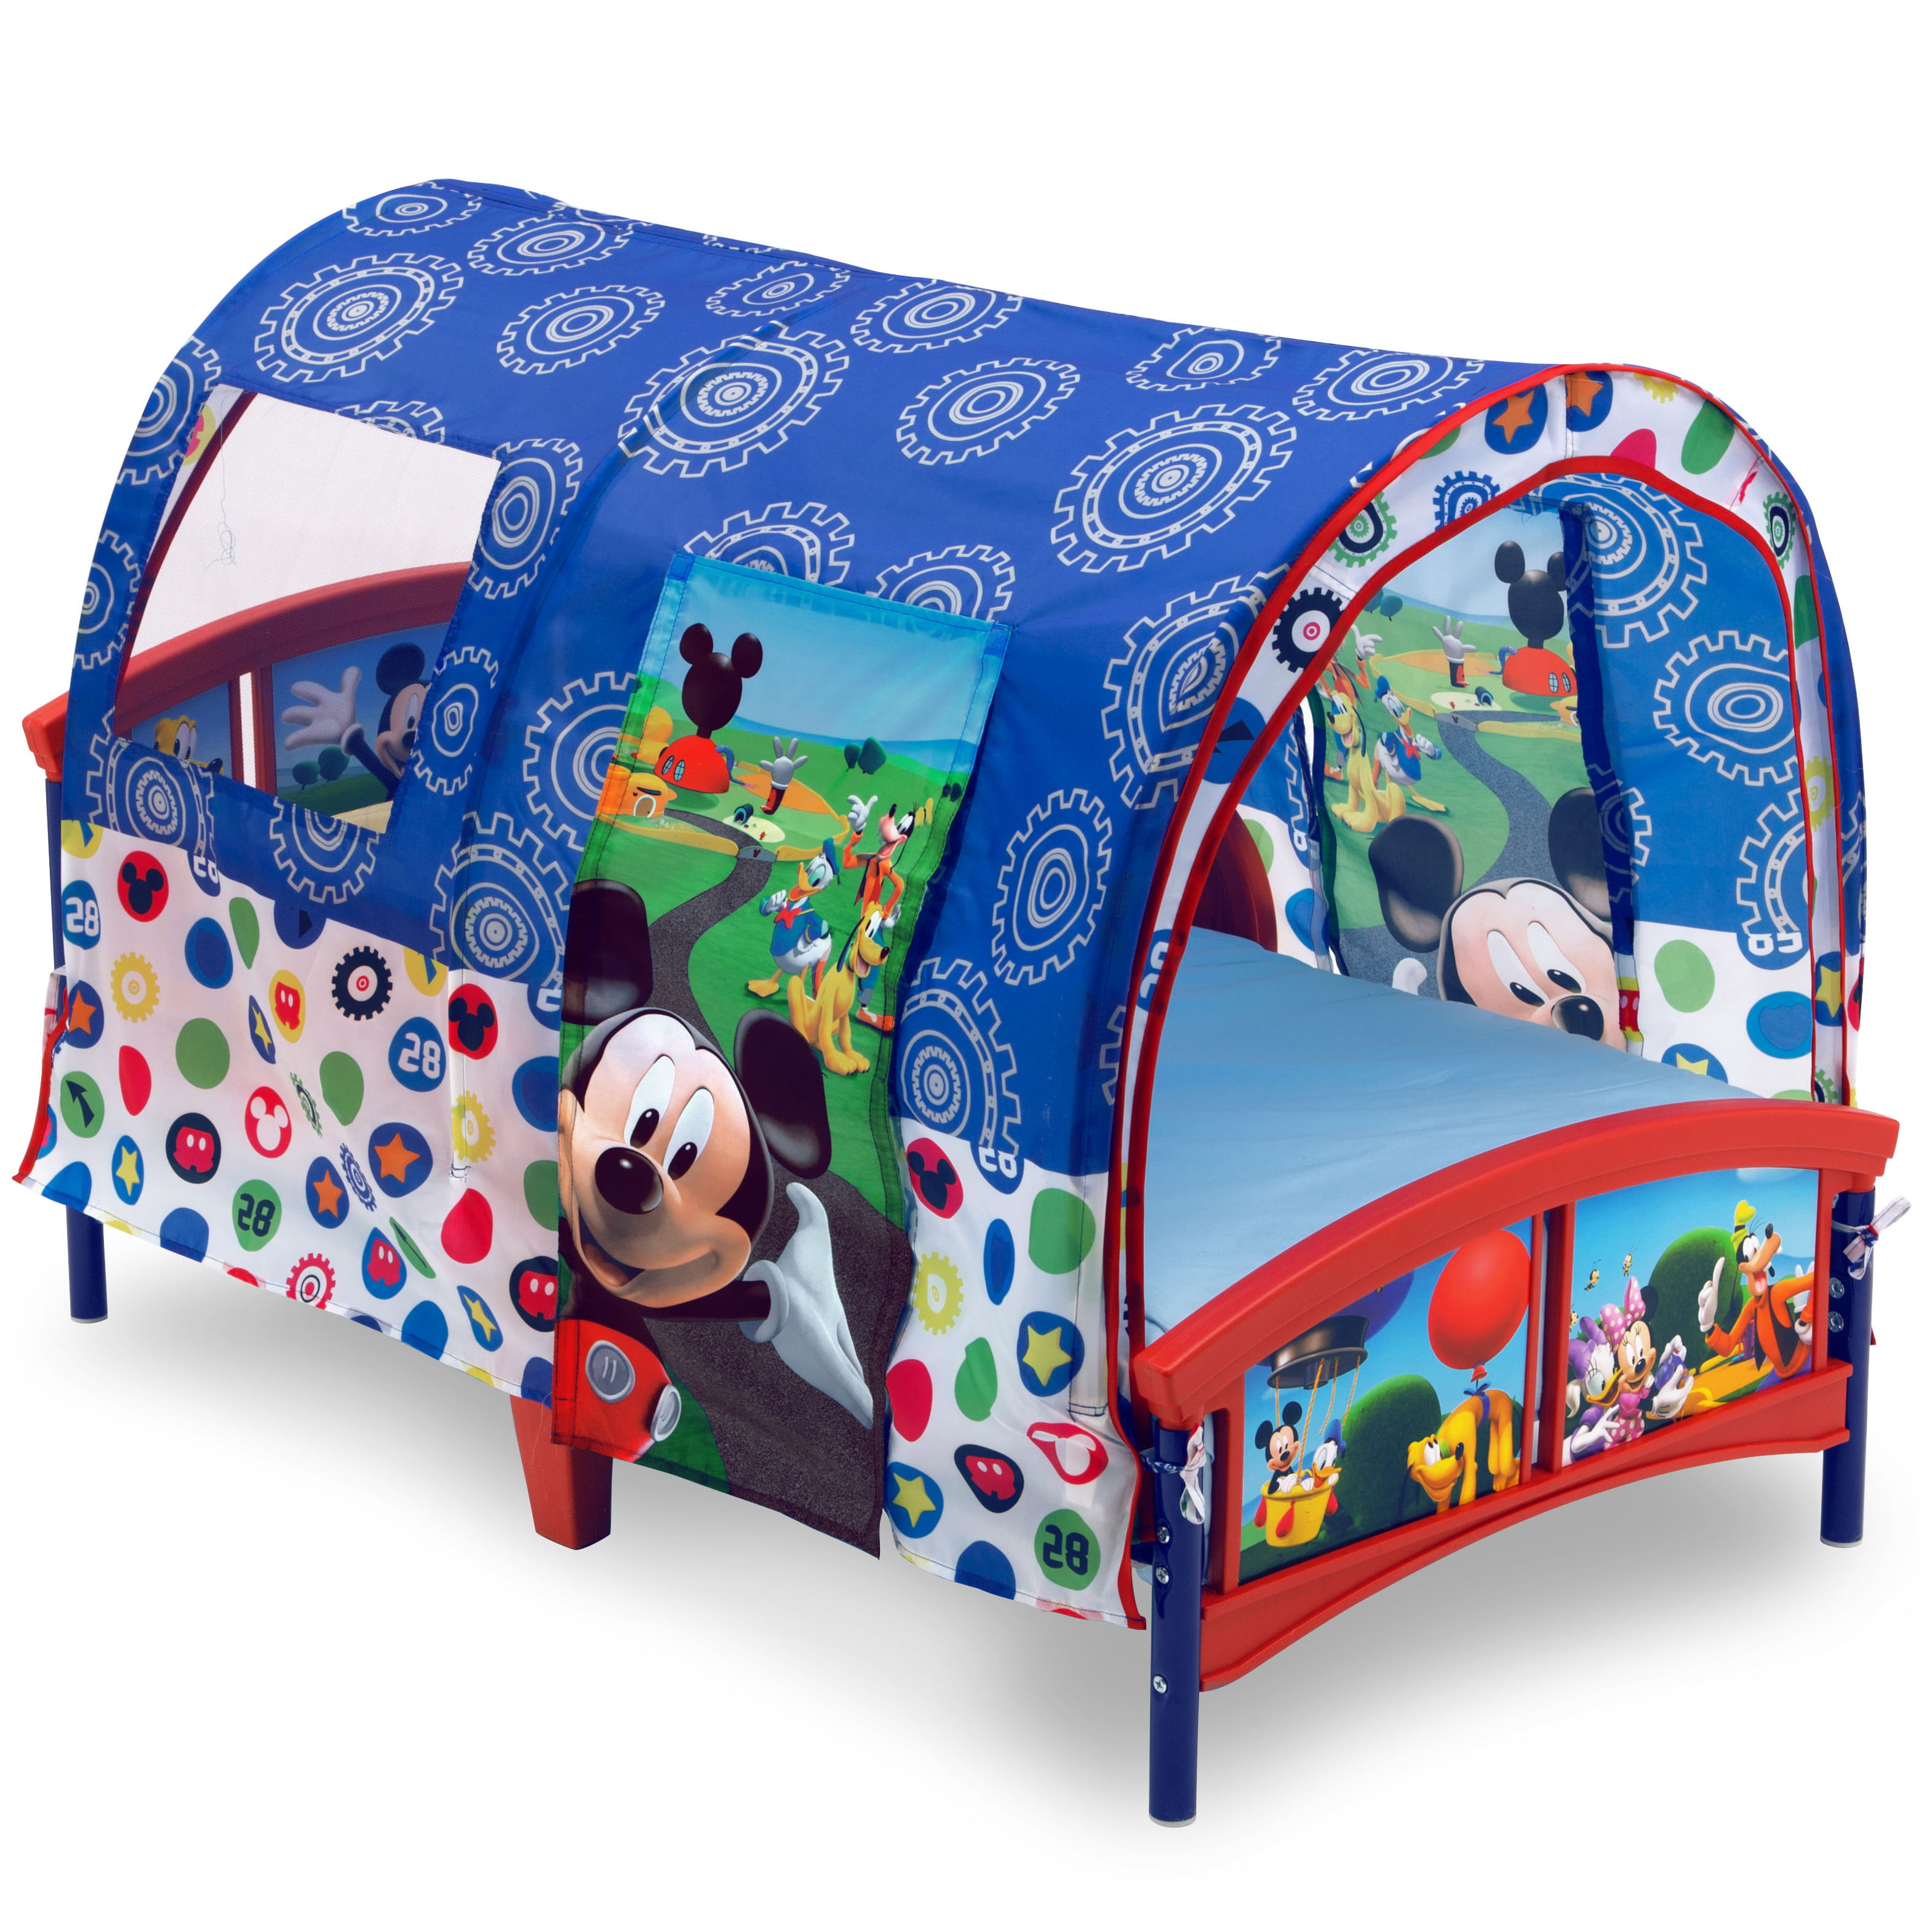 Delta Children Disney Mickey Mouse Plastic Toddler Canopy Bed Blue - Walmart.com  sc 1 st  Walmart & Delta Children Disney Mickey Mouse Plastic Toddler Canopy Bed Blue ...